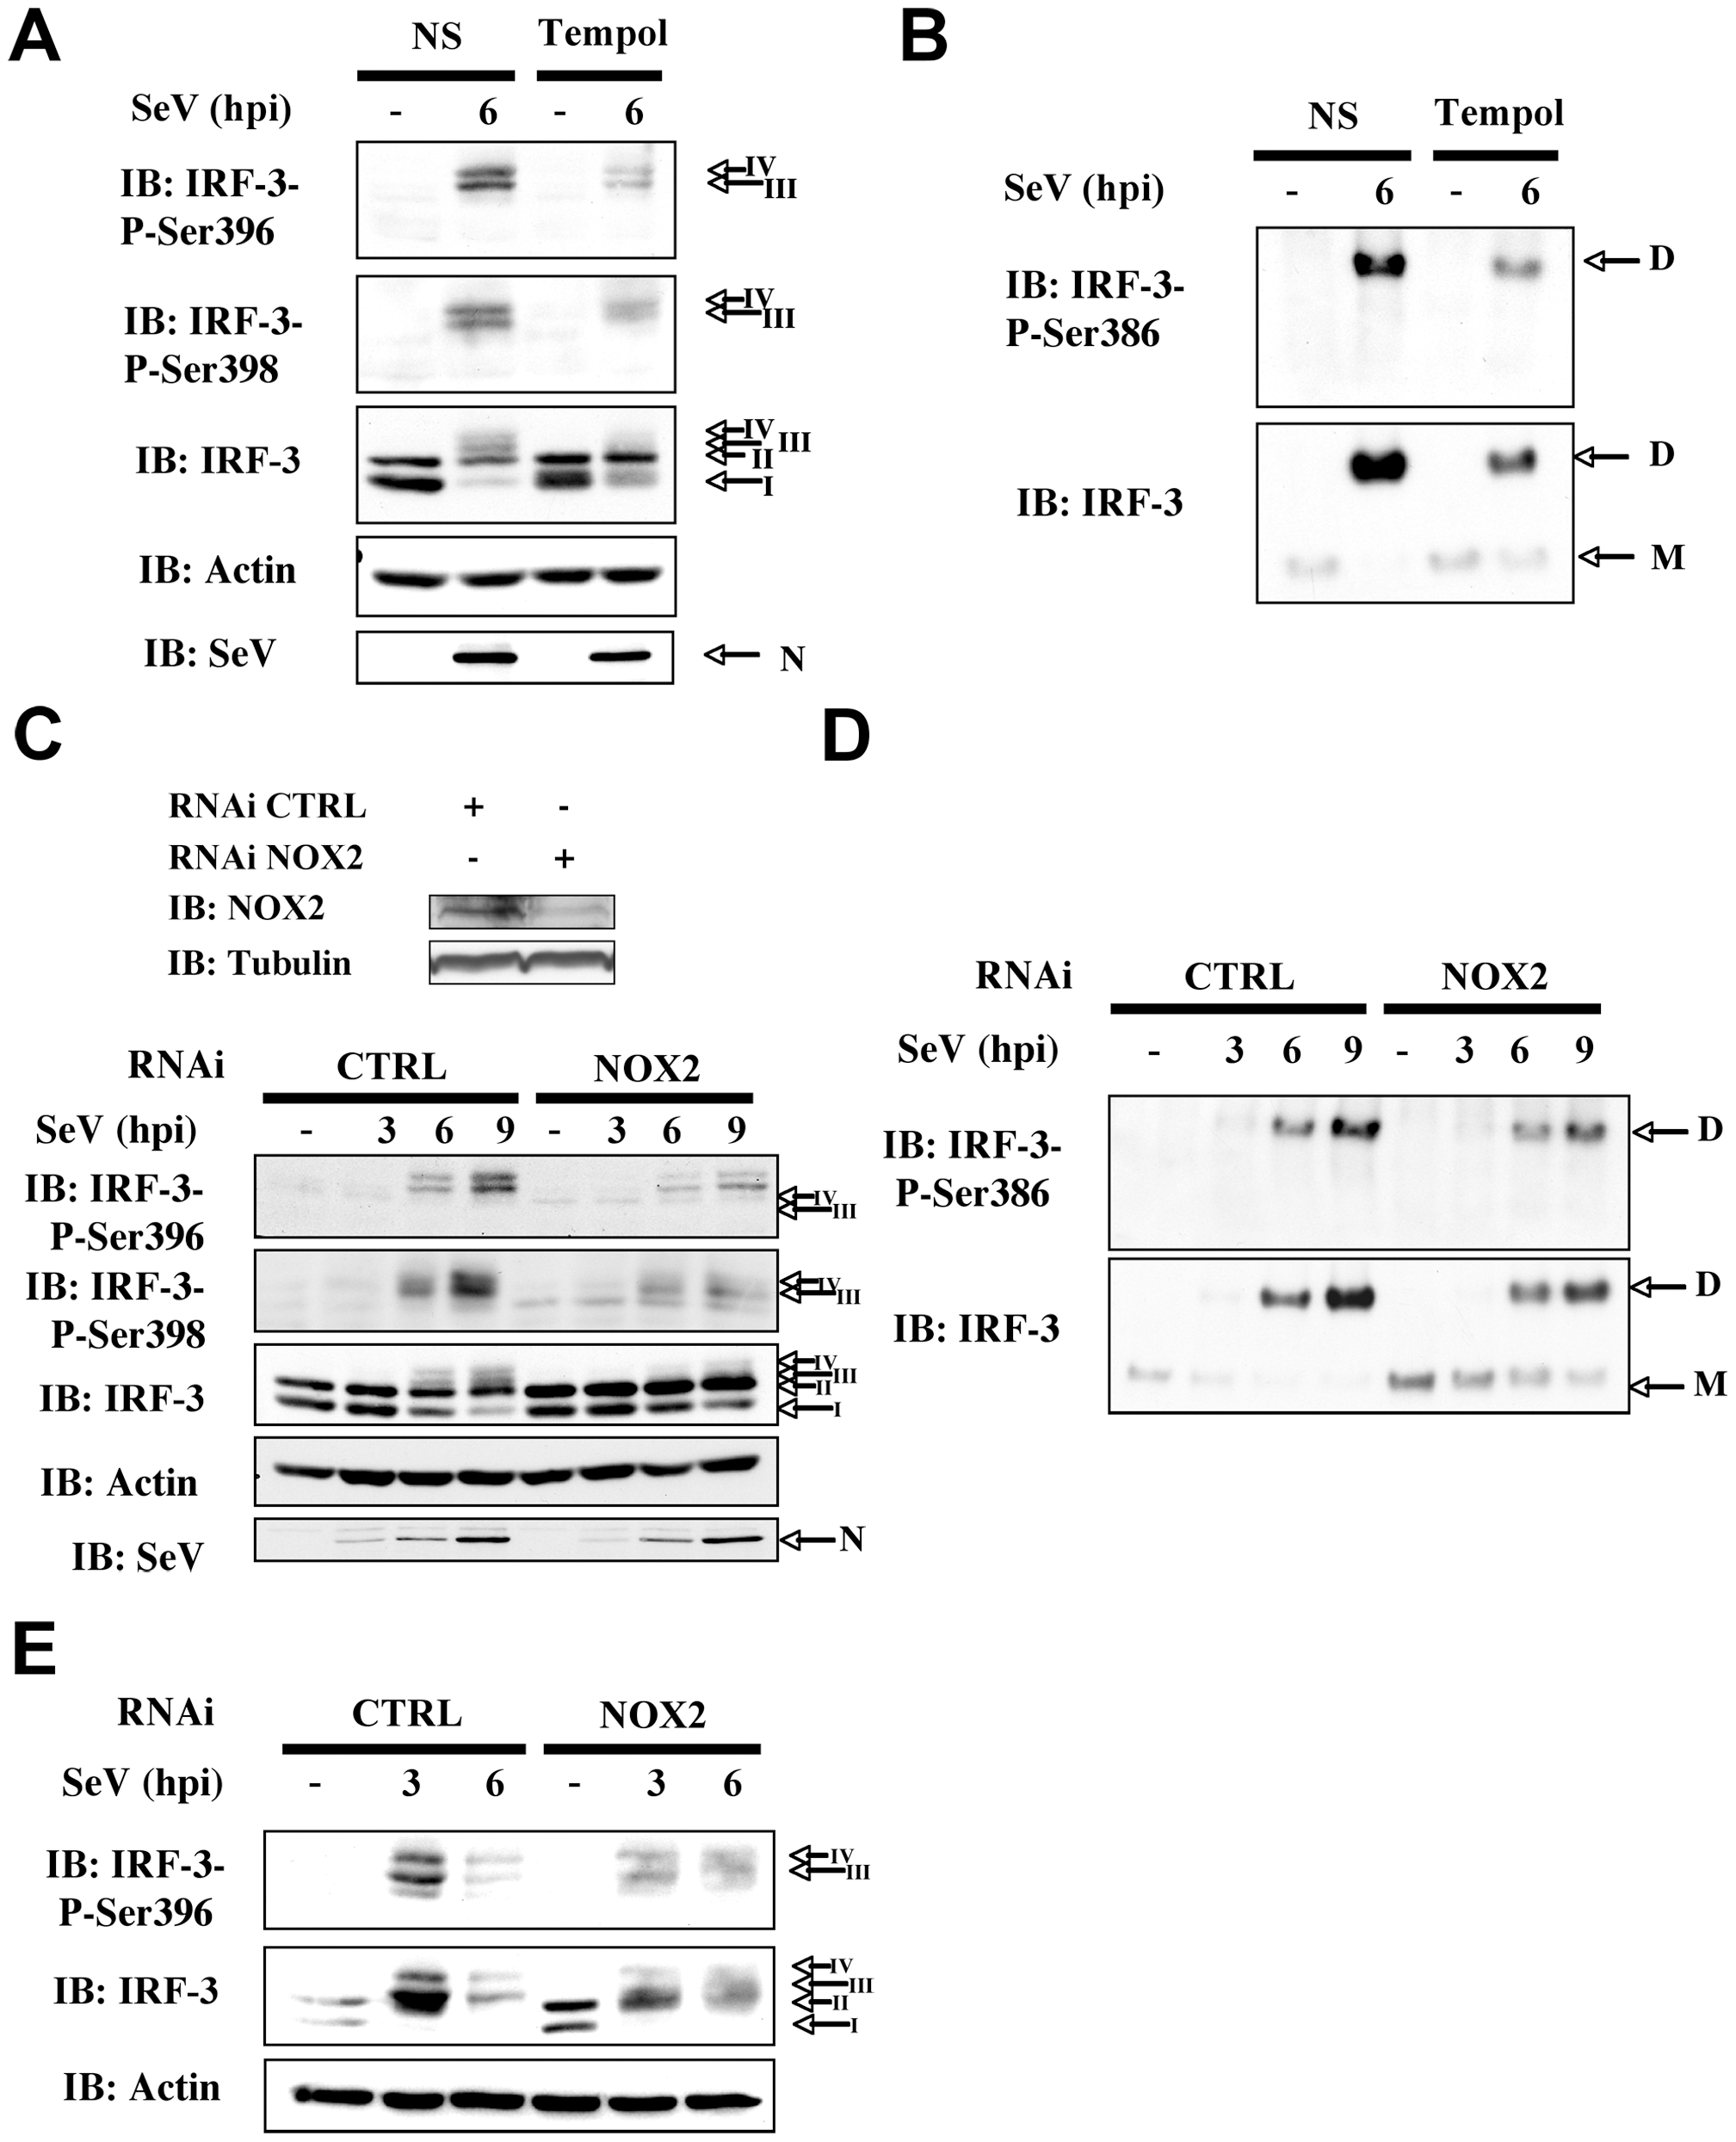 Knockdown of NOX2 expression impairs SeV-induced C-terminal IRF-3 phosphorylation and dimerization in A549 and human primary NHBE.